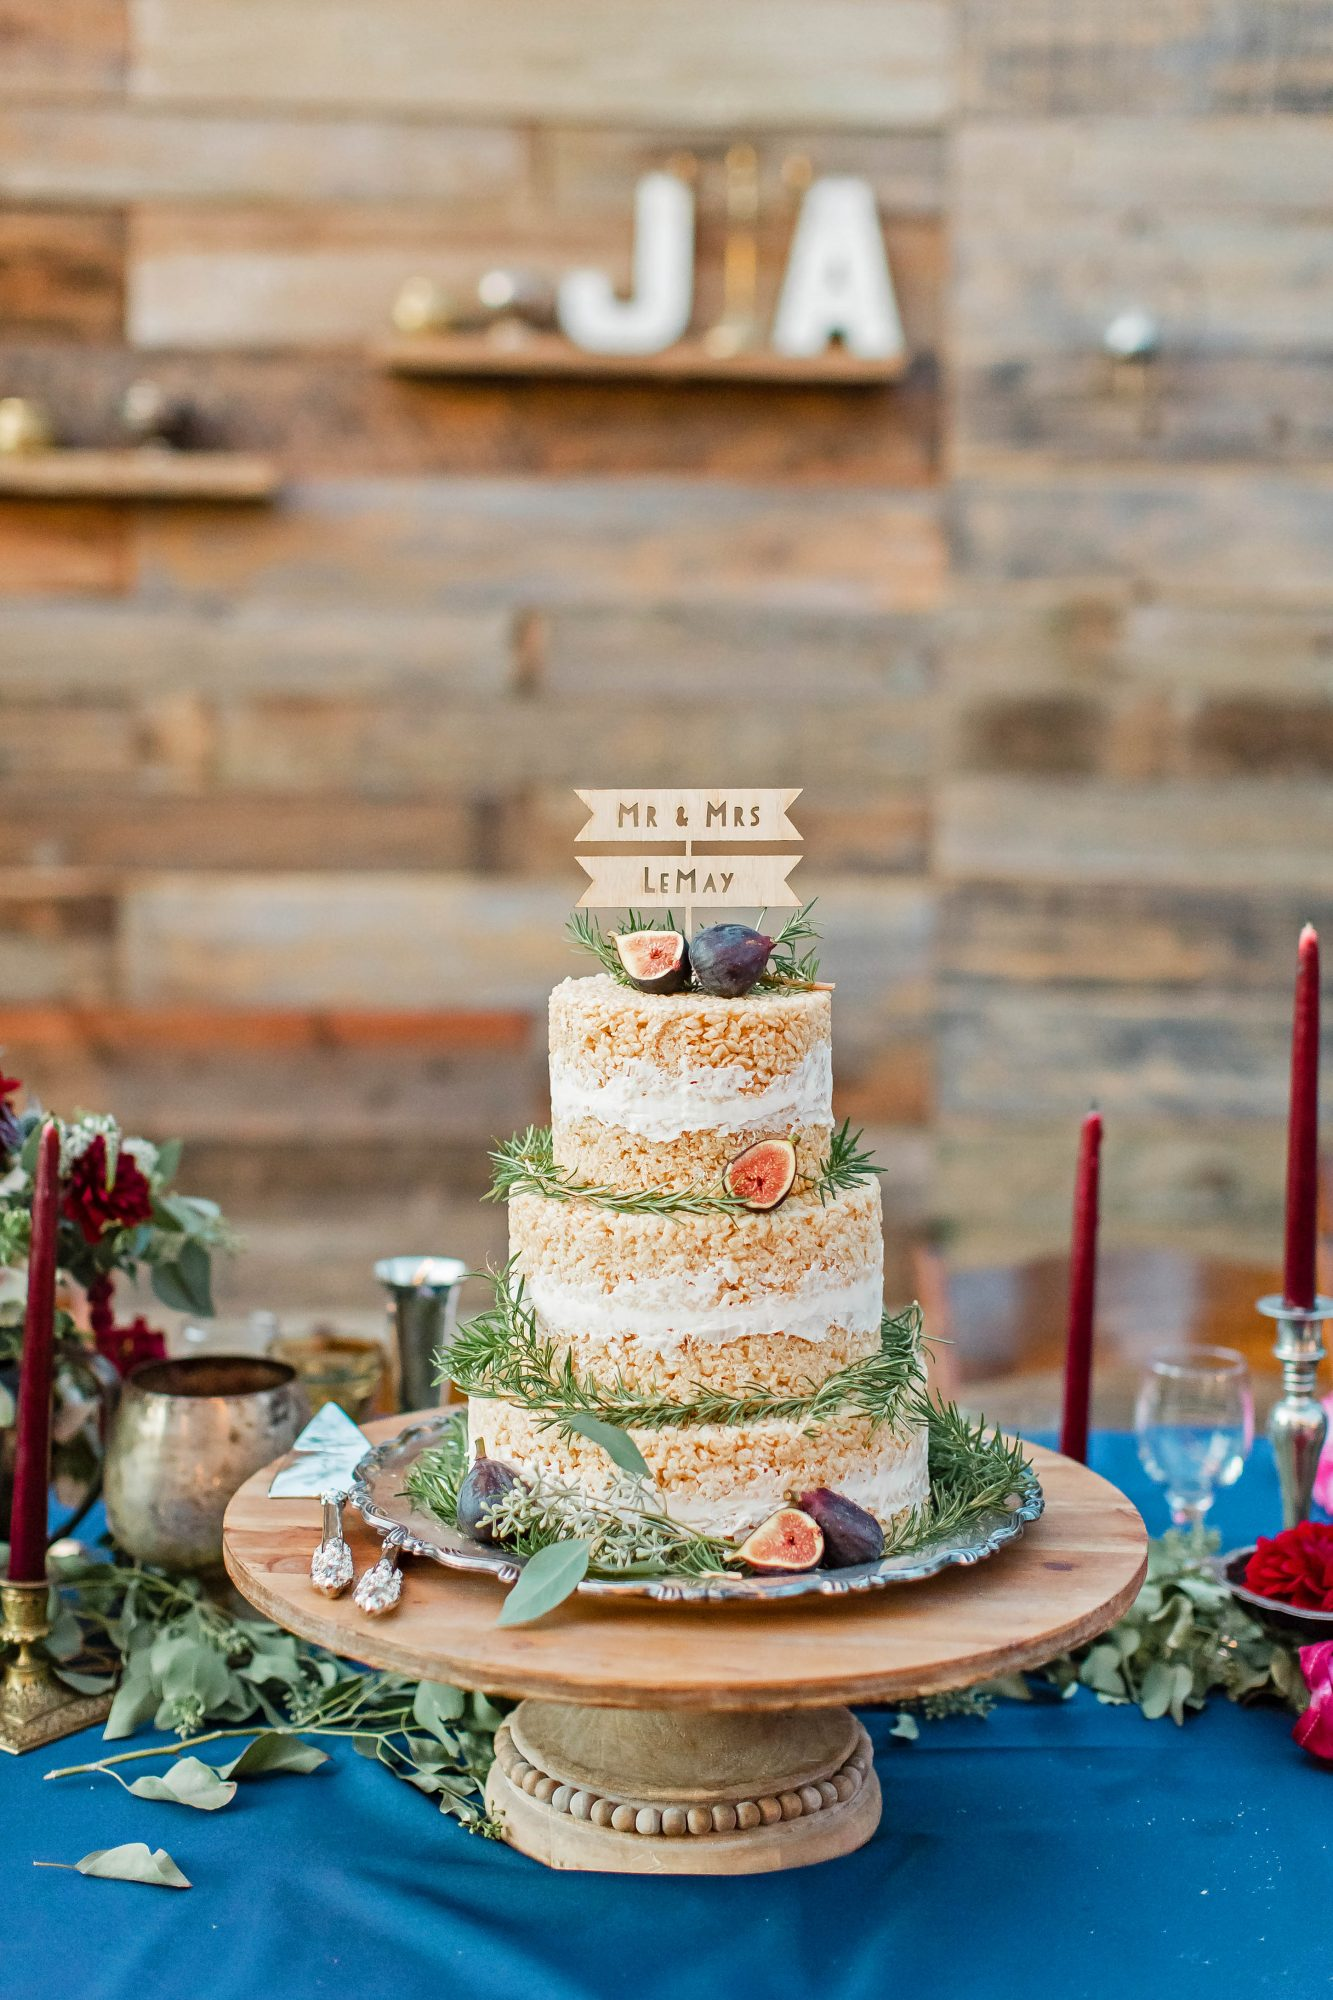 rice krispies wedding cake with figs